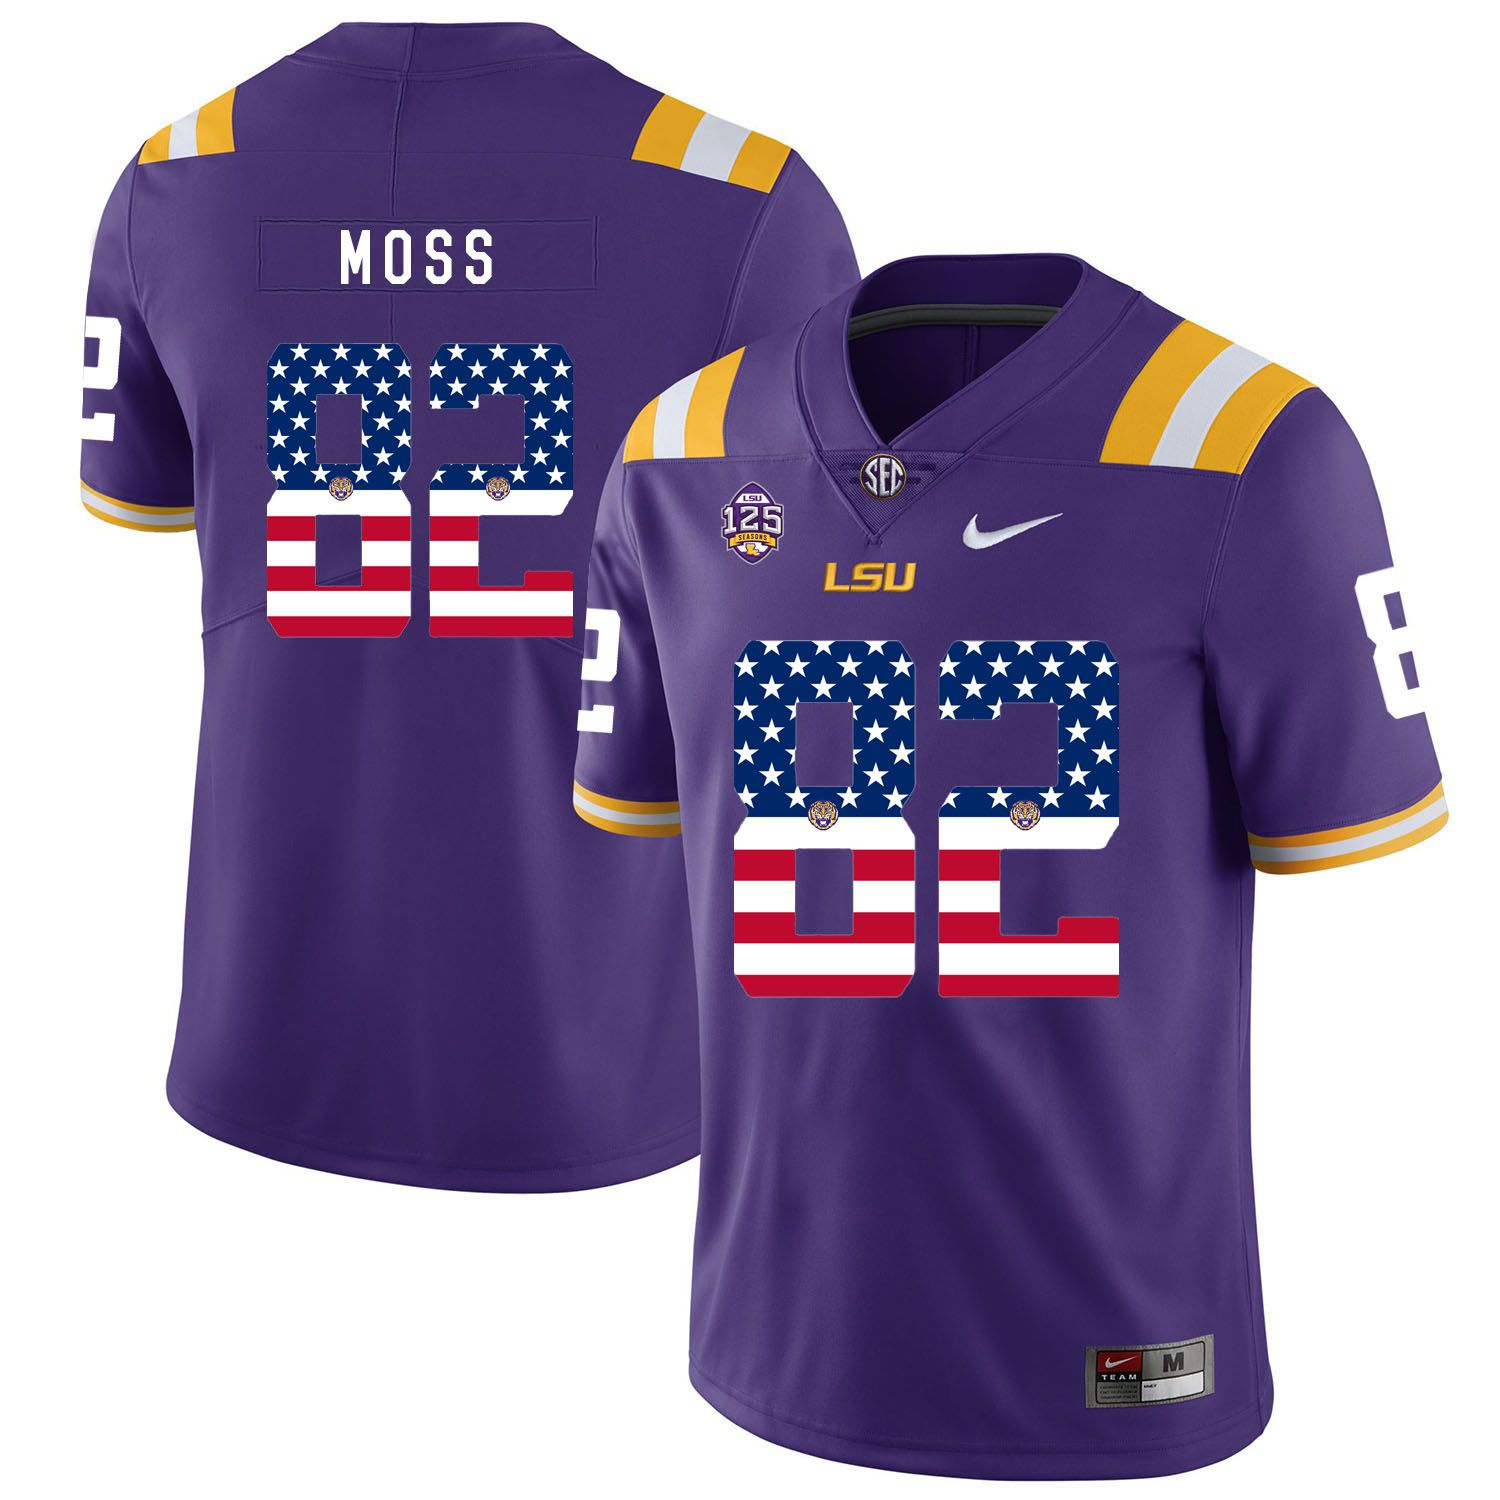 Men LSU Tigers 82 Moss Purple Flag Customized NCAA Jerseys